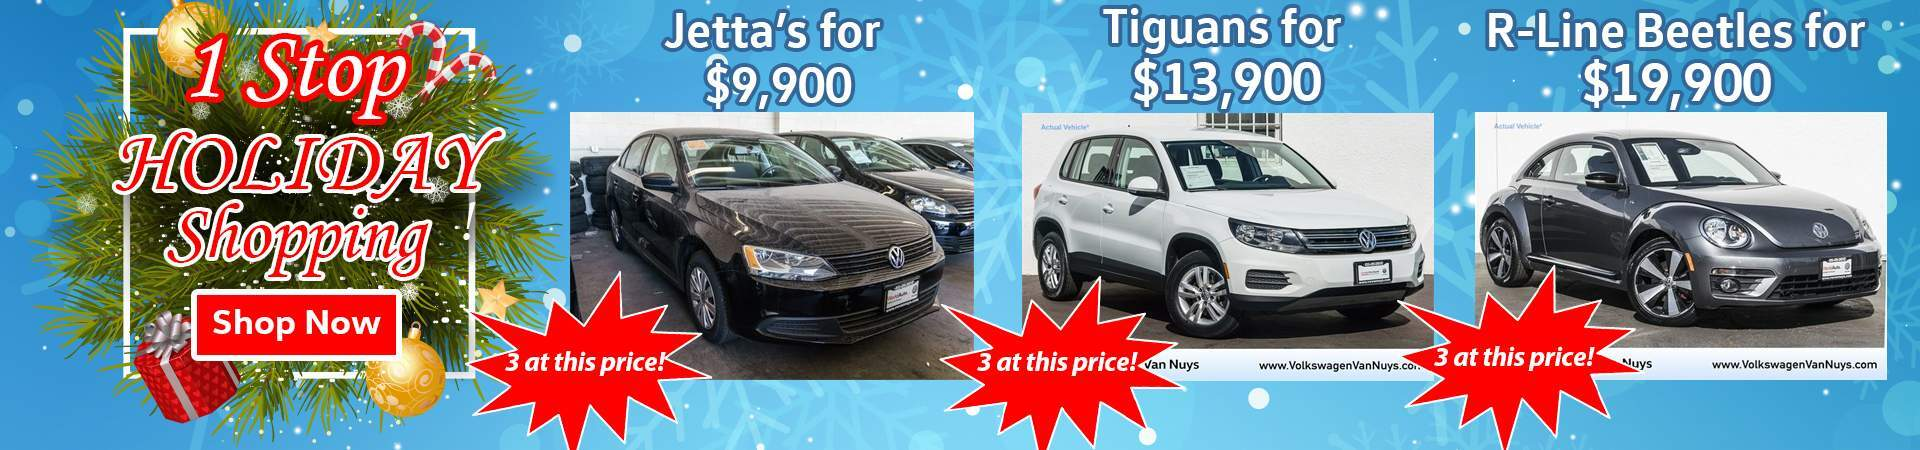 December Deals on multiple vehicles